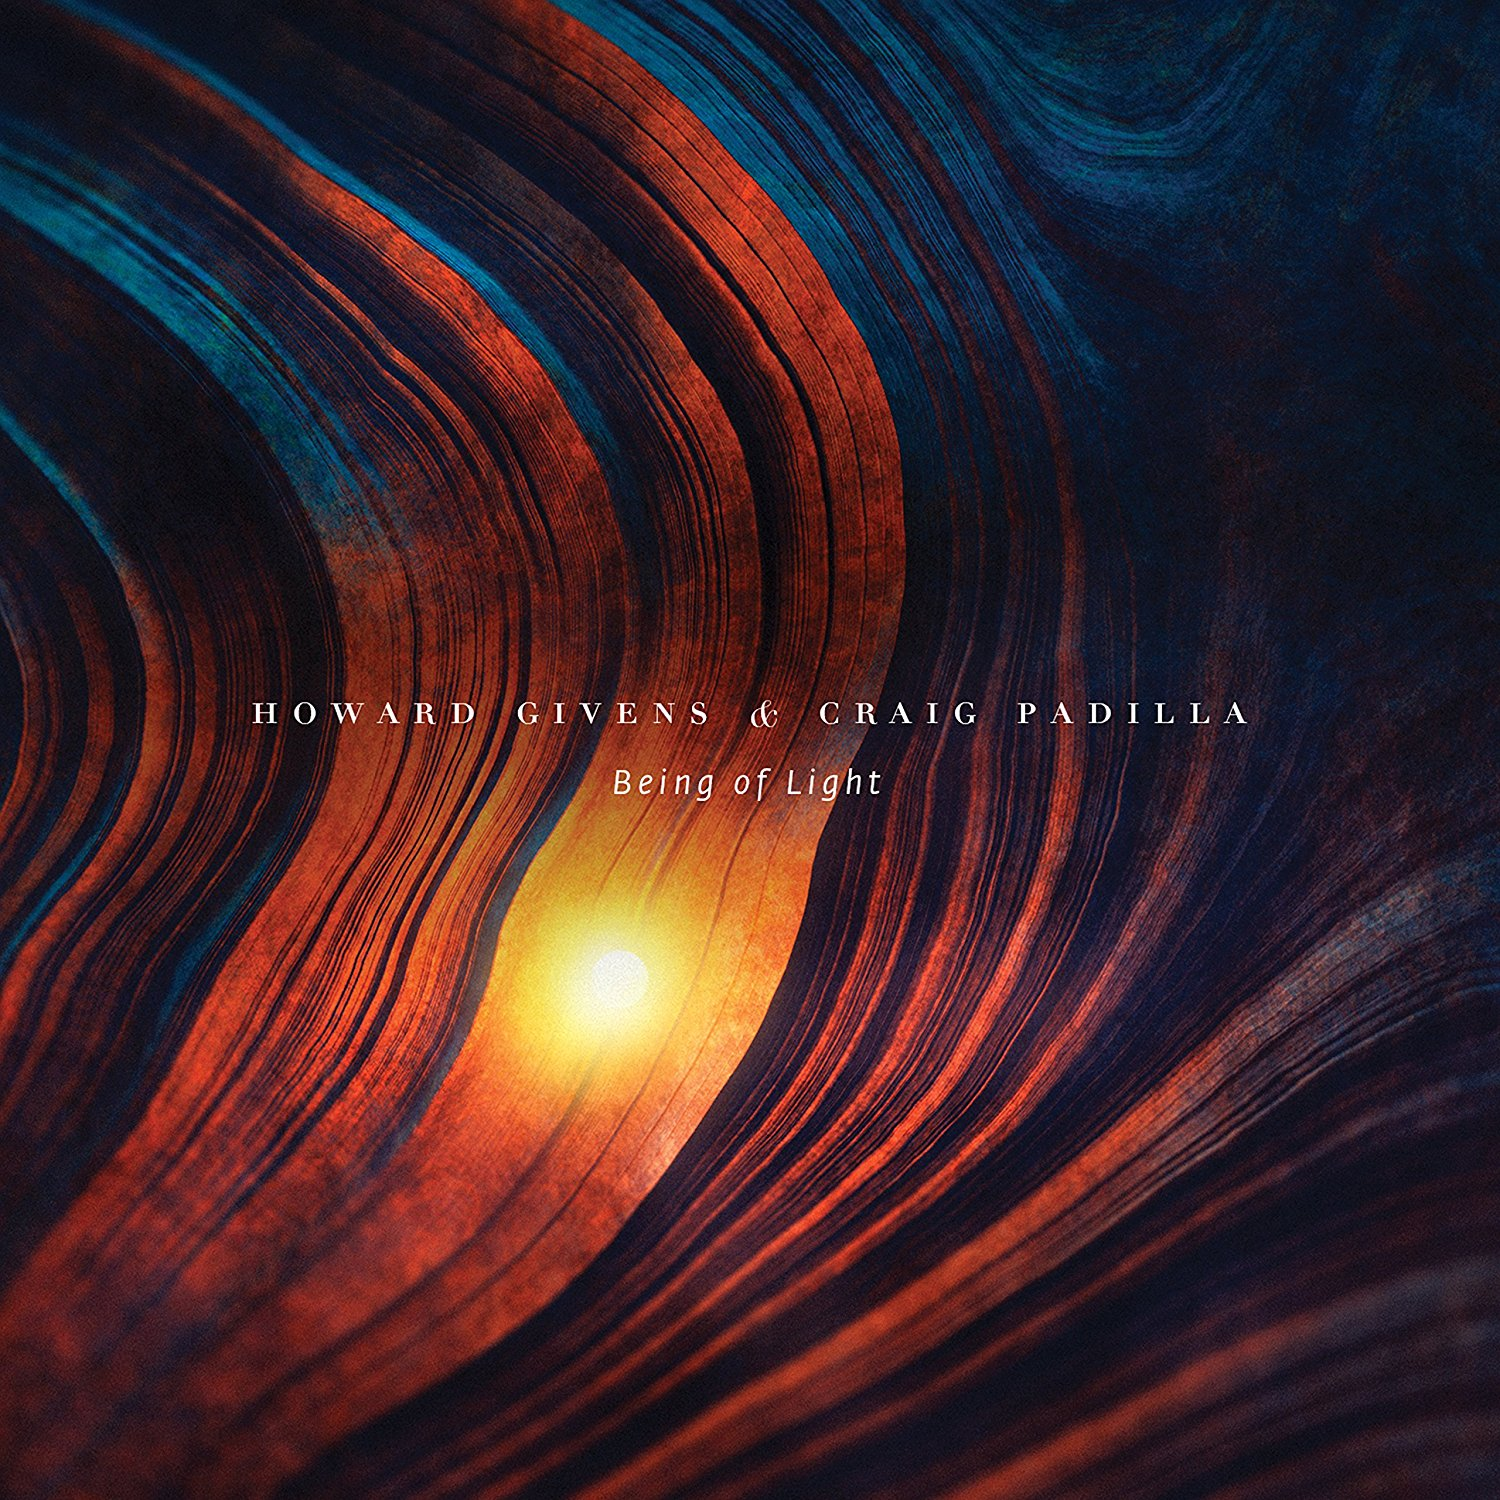 Howard Givens & Craig Padilla — Being of Light